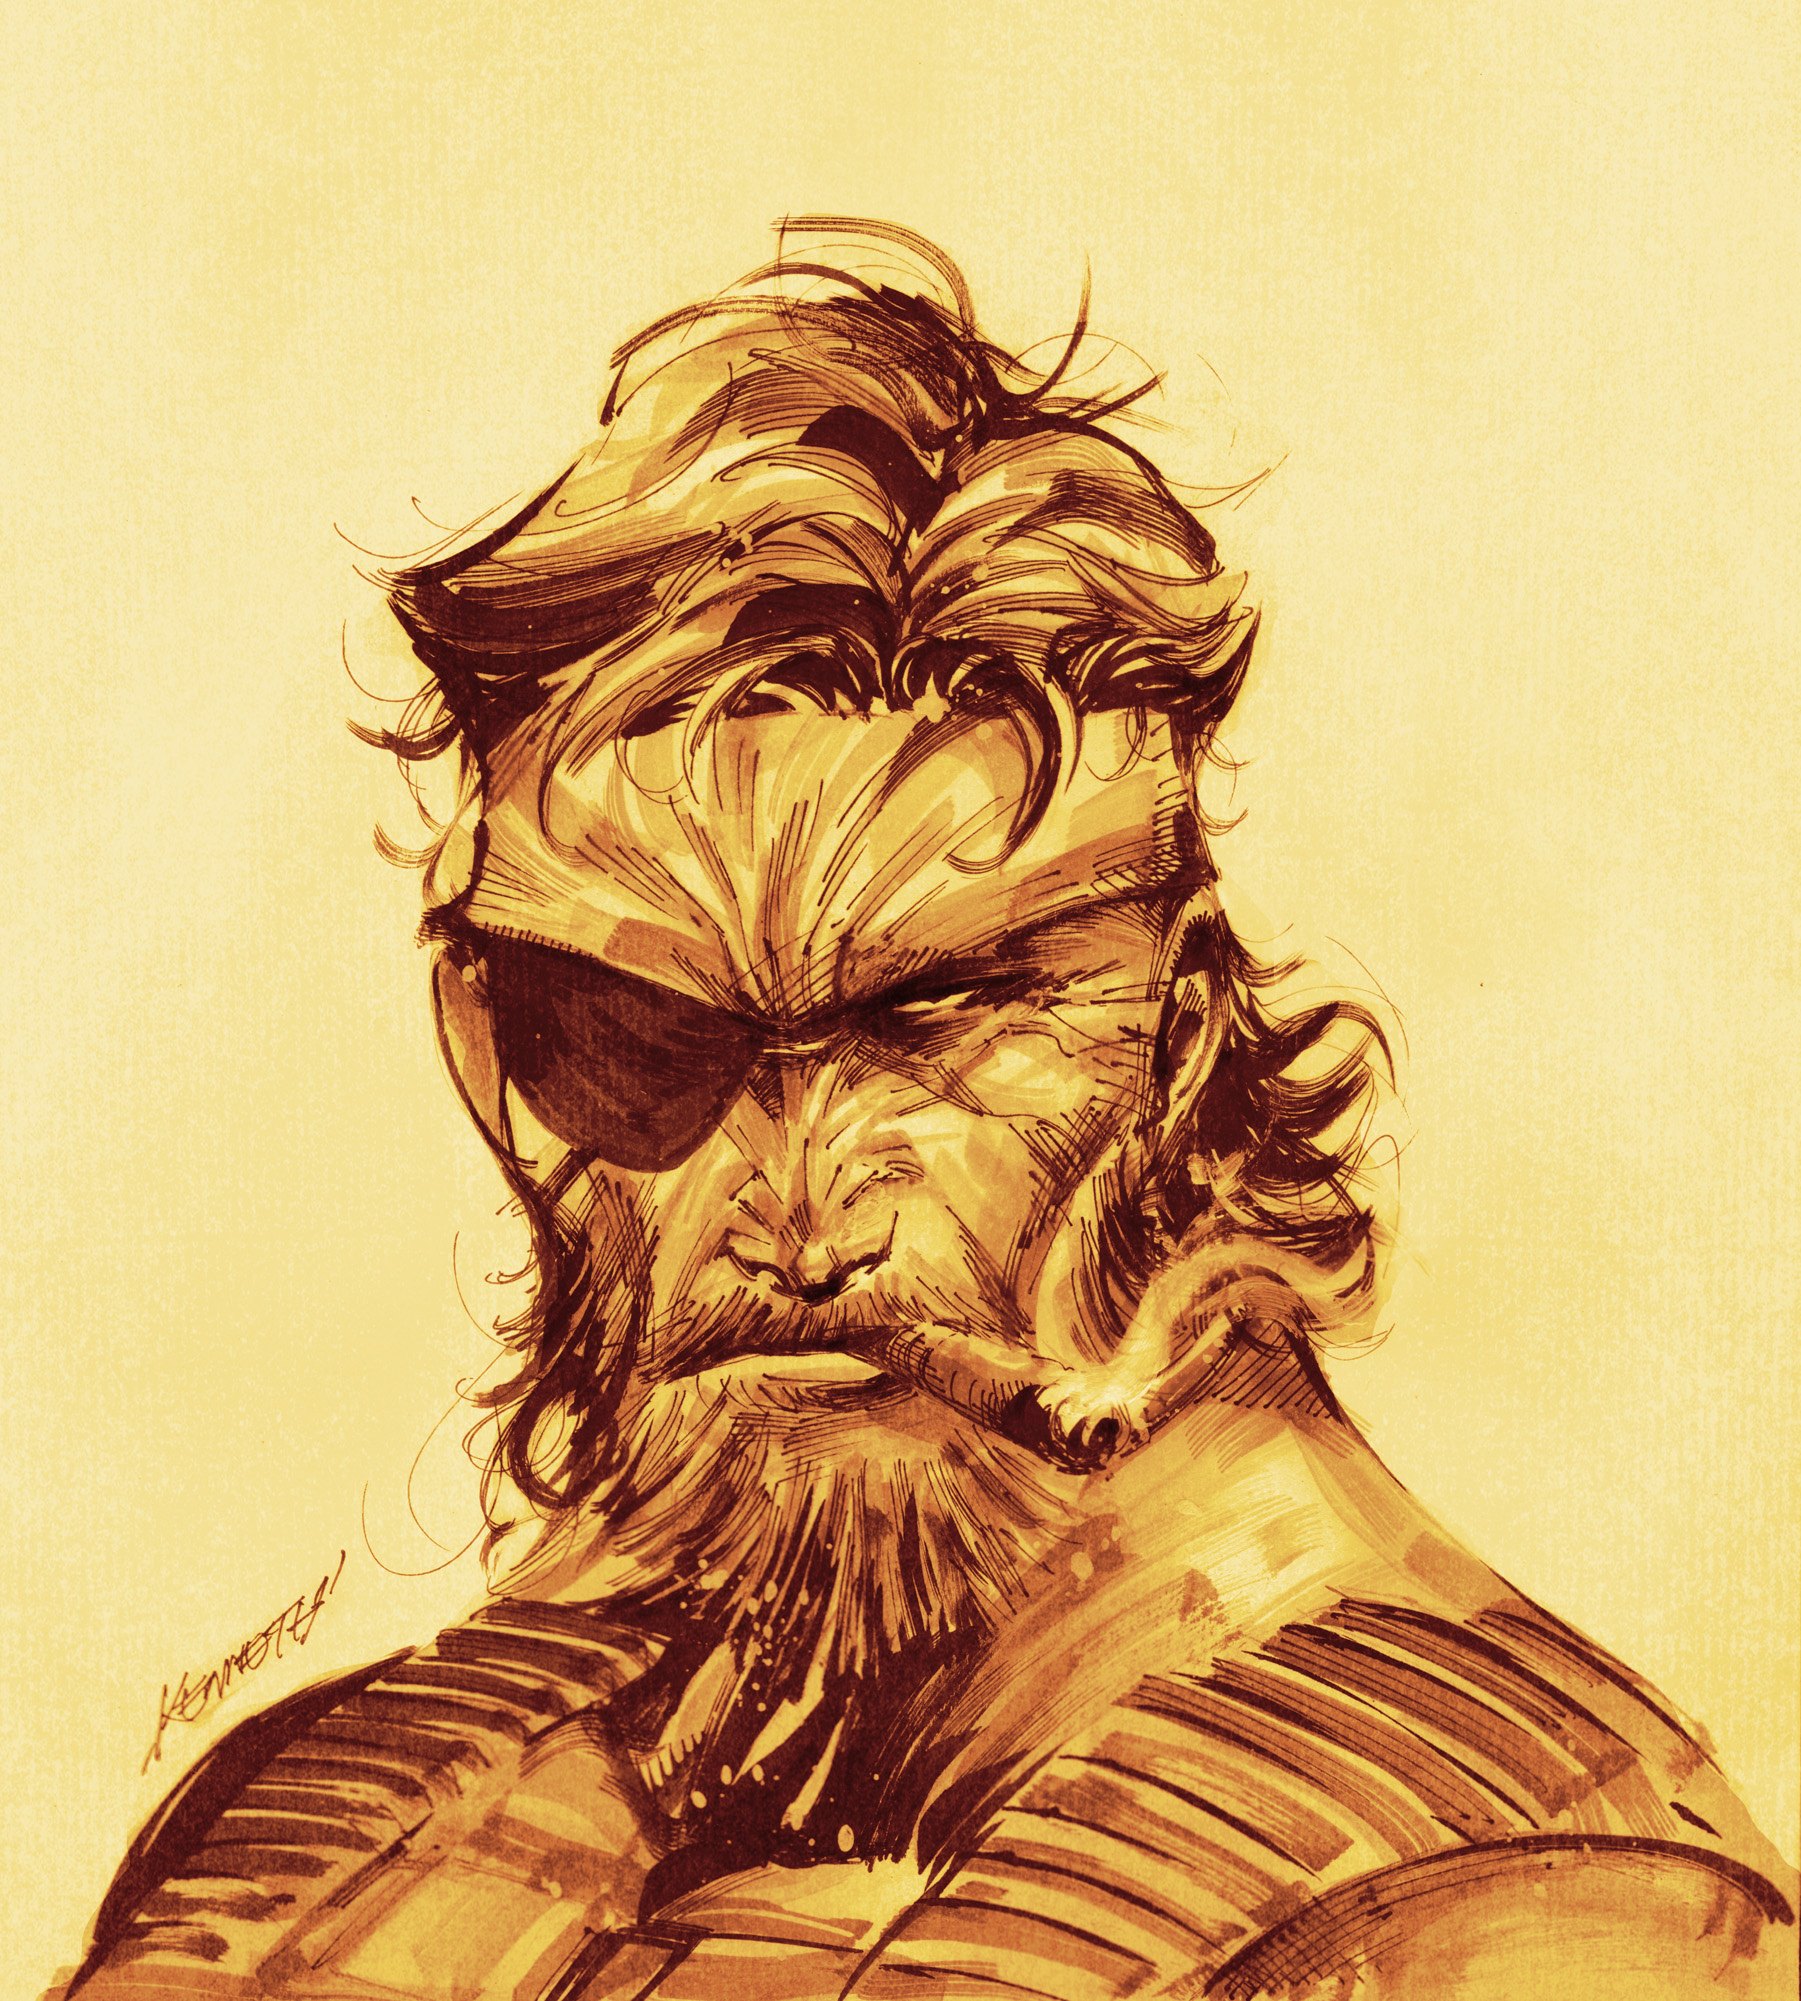 MGS 5 fanart by scabrouspencil